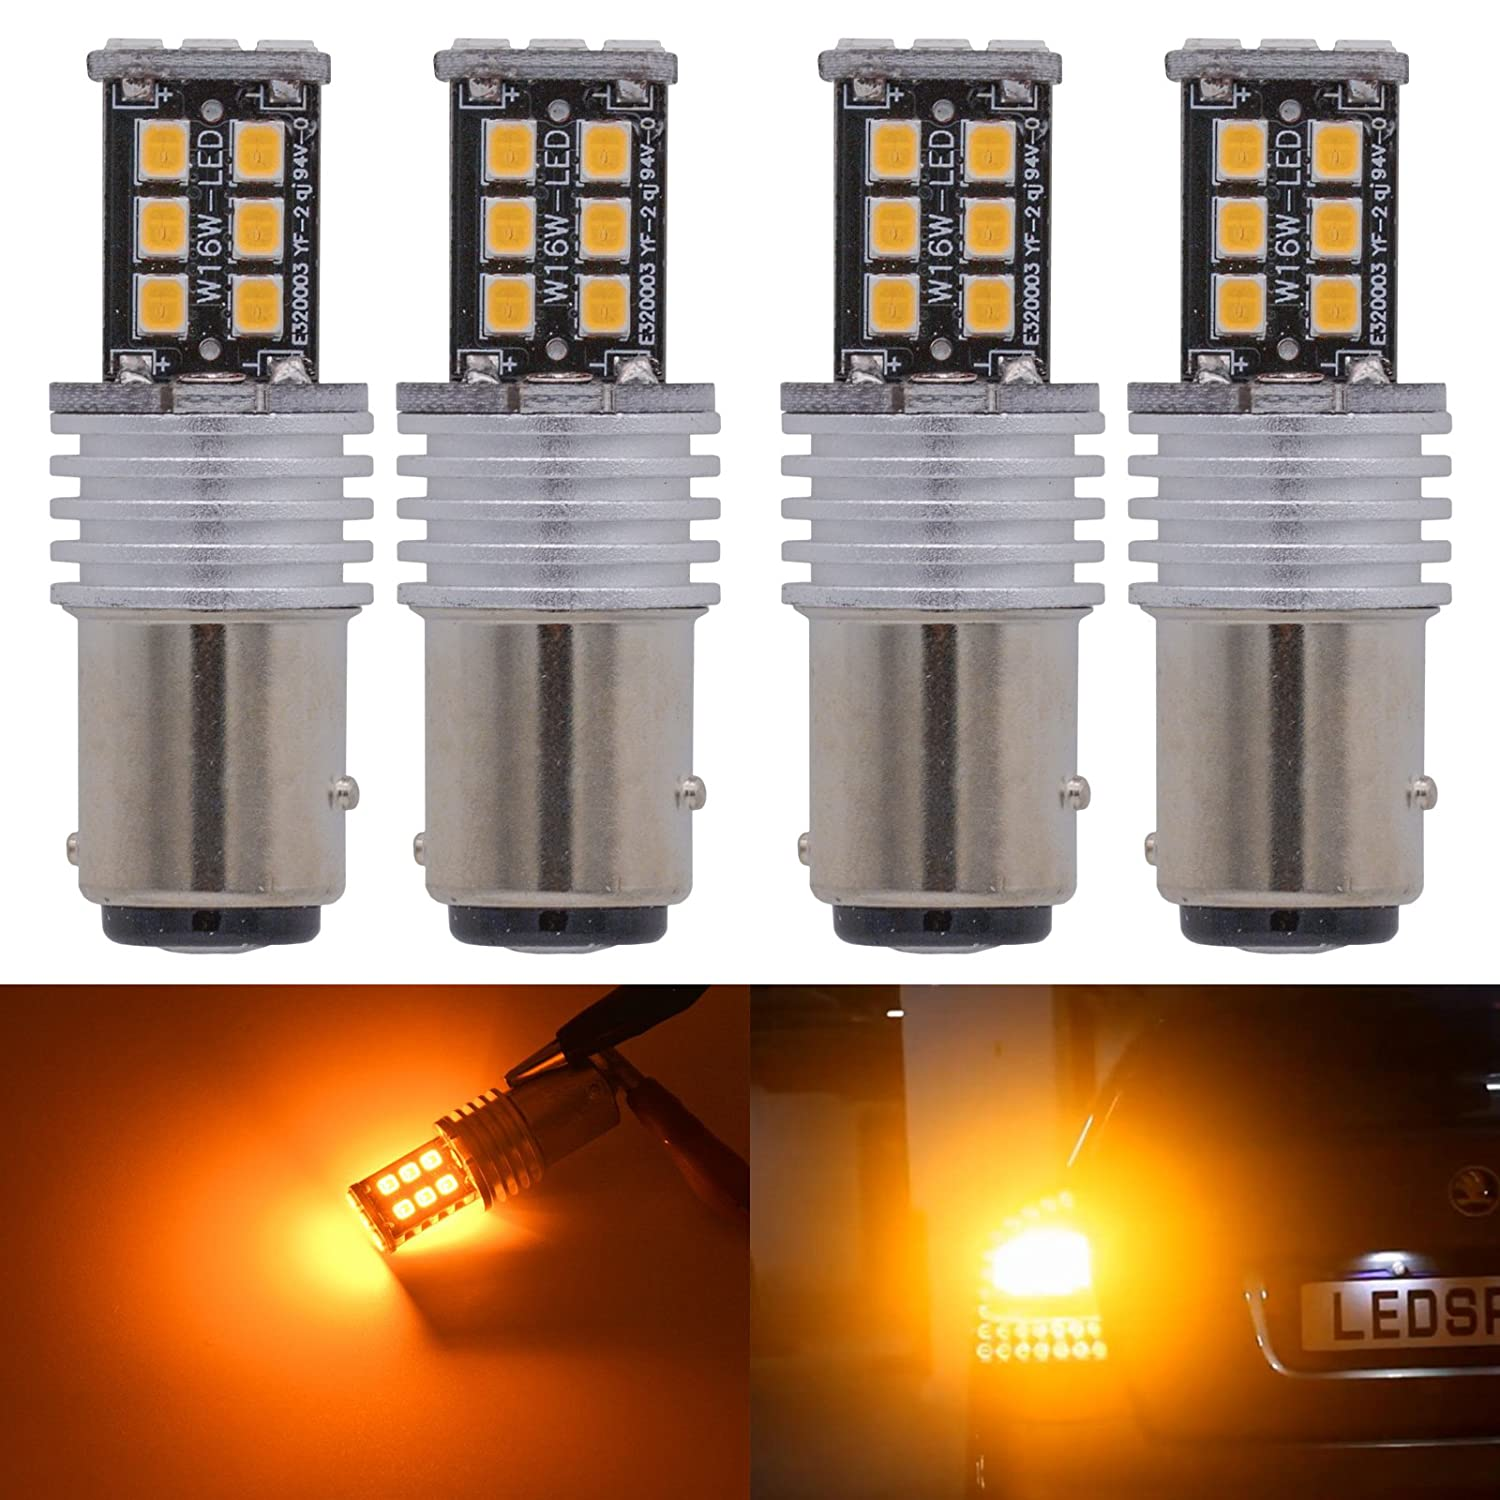 KaTur 4pcs High Power 800 Lumens Super Bright 1157 BAY15D 1196 1016 7528 LED 15SMD 2835 Backup Reverse Tail Brake Lights Parking LED Blubs DC 12V Amber 1157/BAY15D